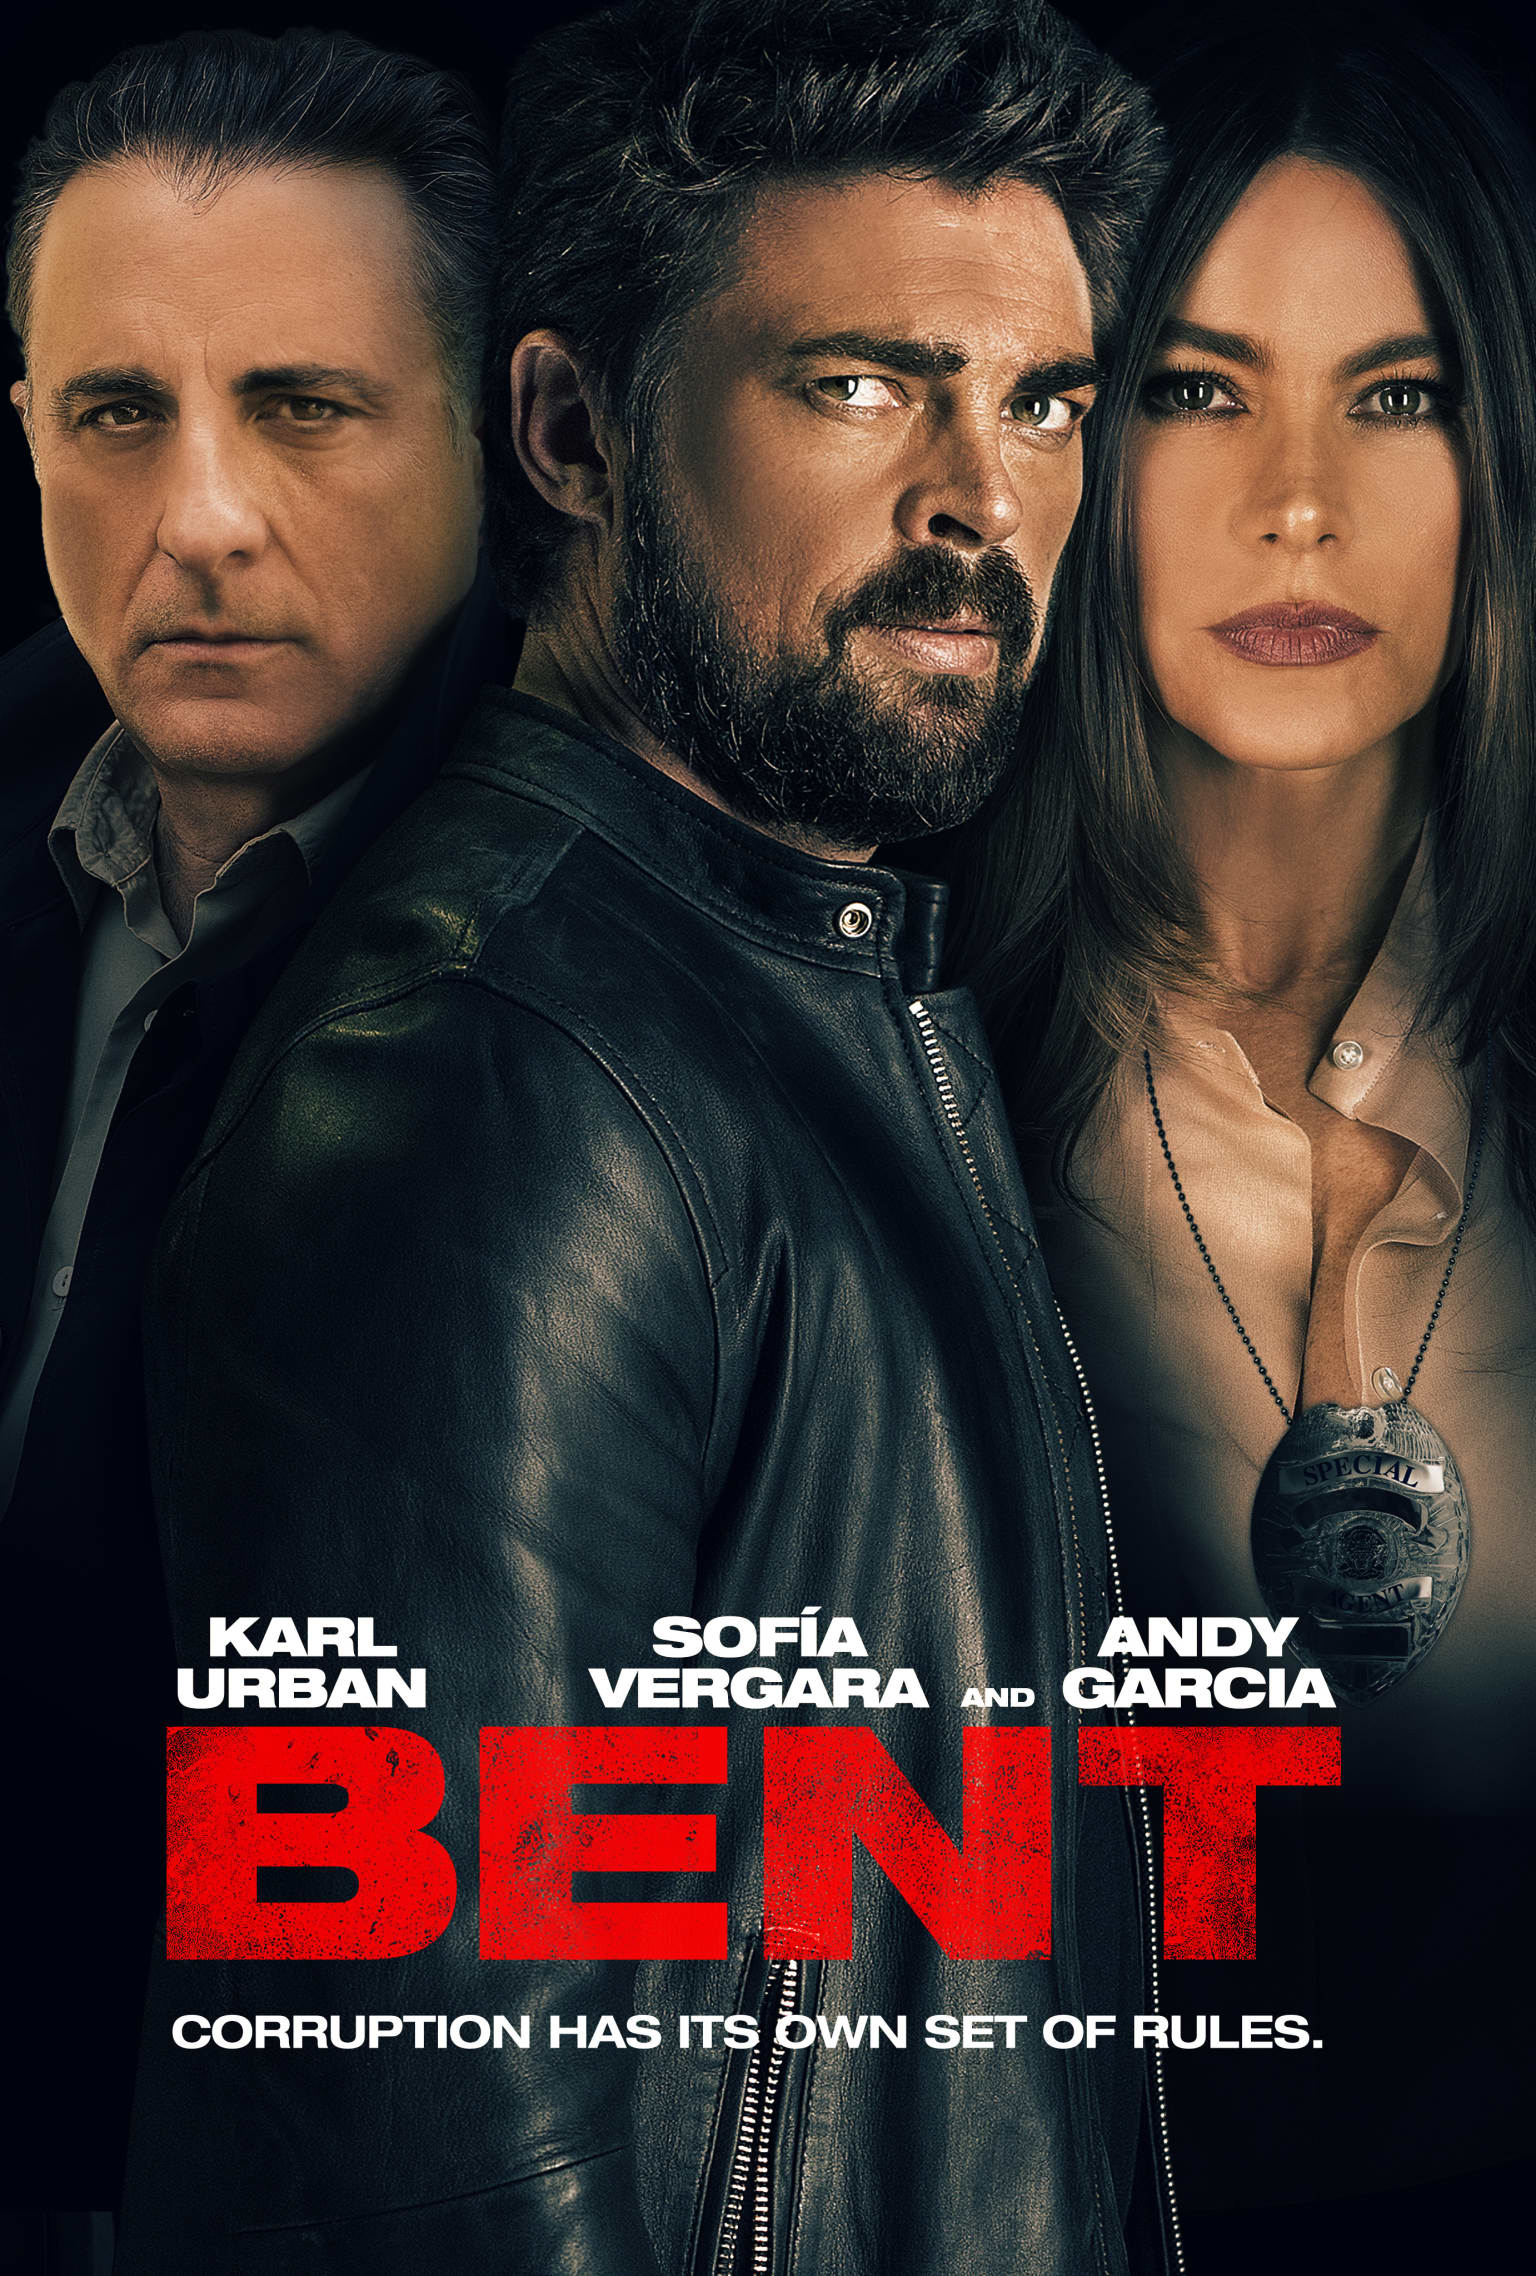 BENT - FEATURE FILM